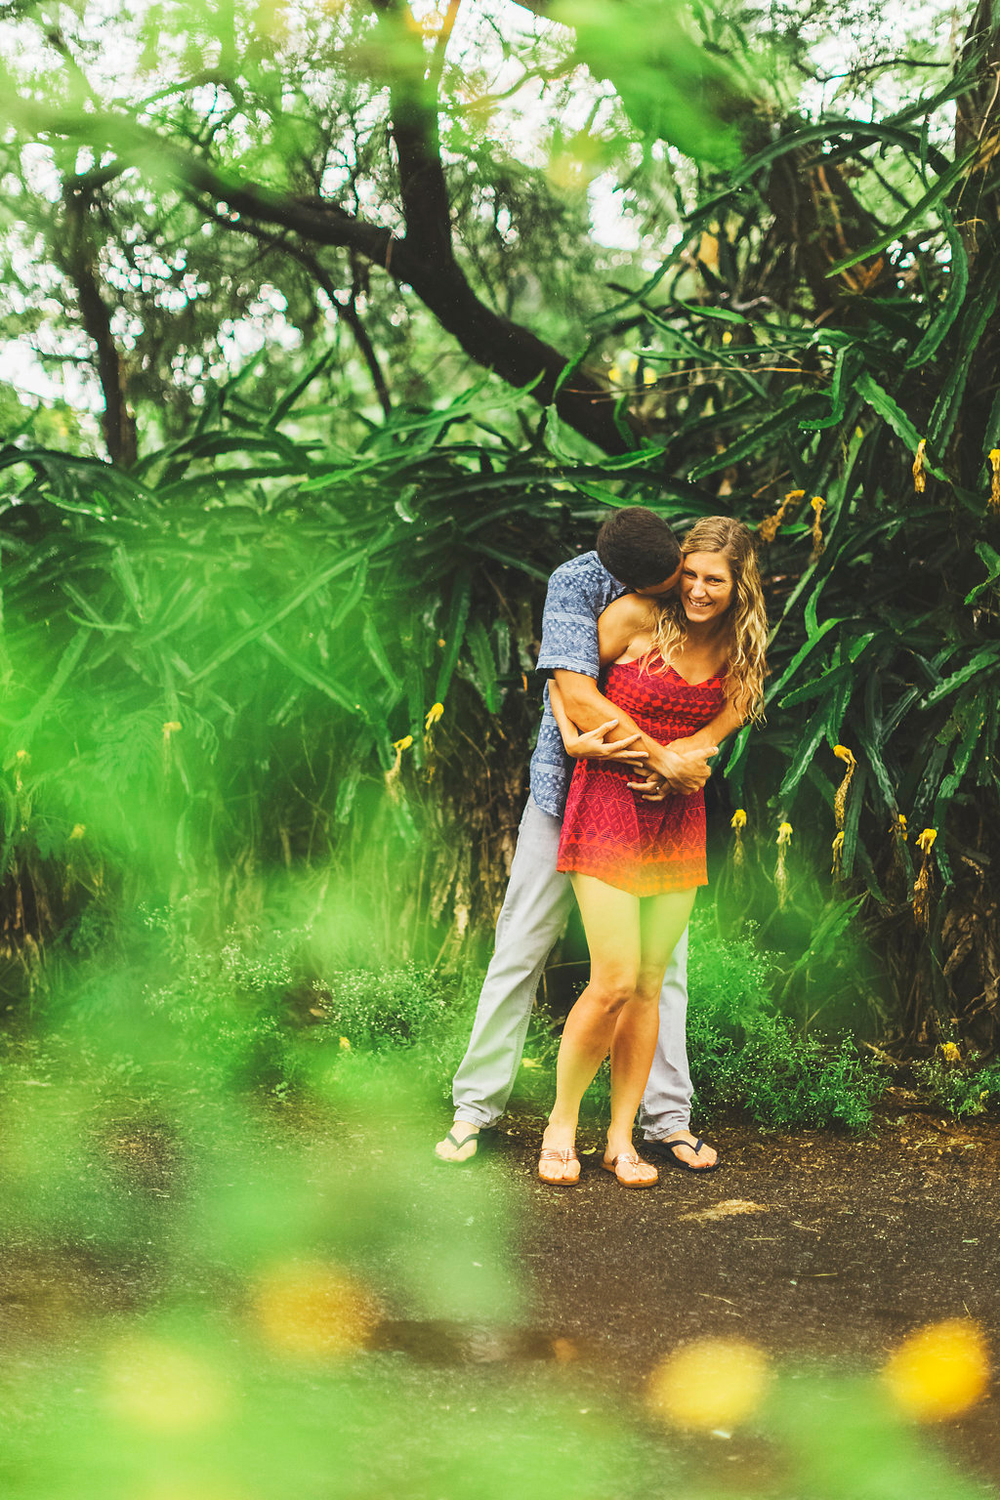 angie-diaz-photography-maui-engagement-sarah-mathias-2.jpg